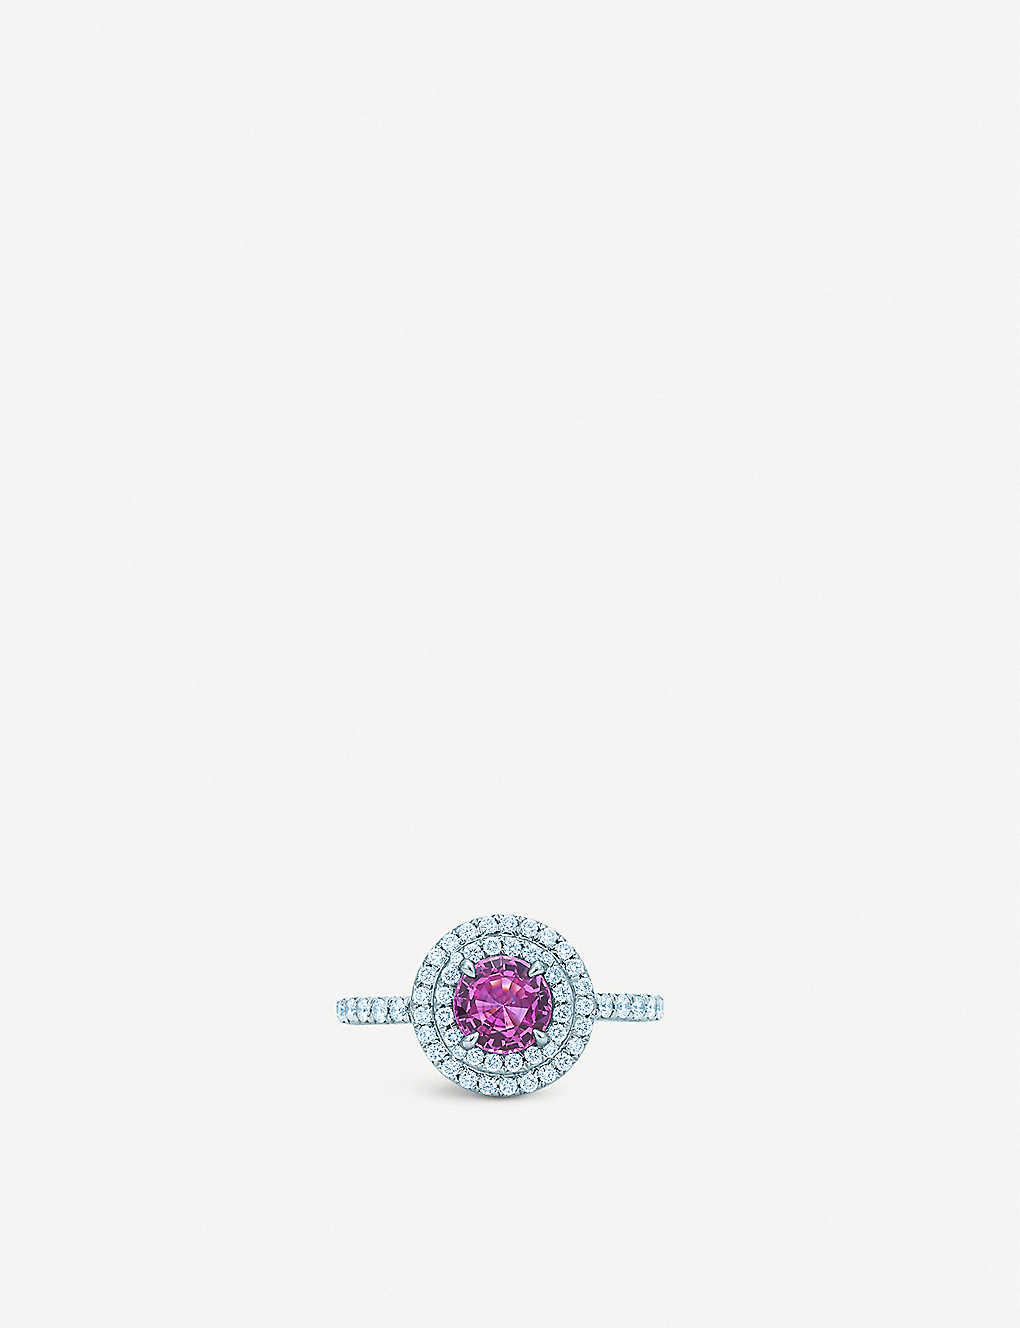 d4545c1c1 TIFFANY & CO - Tiffany Soleste platinum, pink sapphire and diamond ...